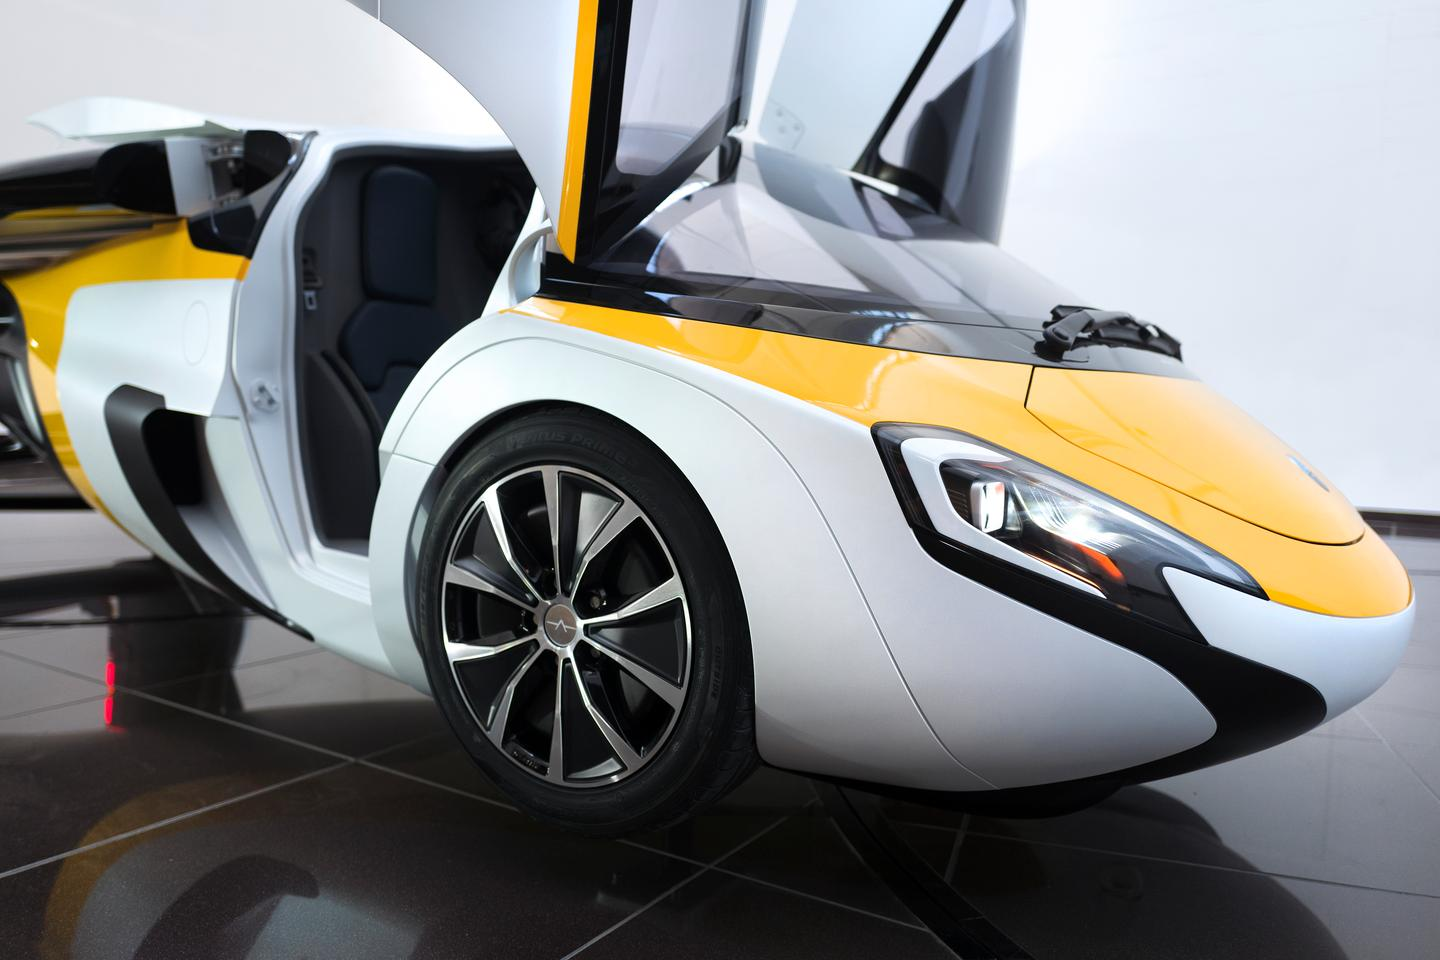 The AeroMobil Flying Car'sdoors open upward, so you know it's expensive